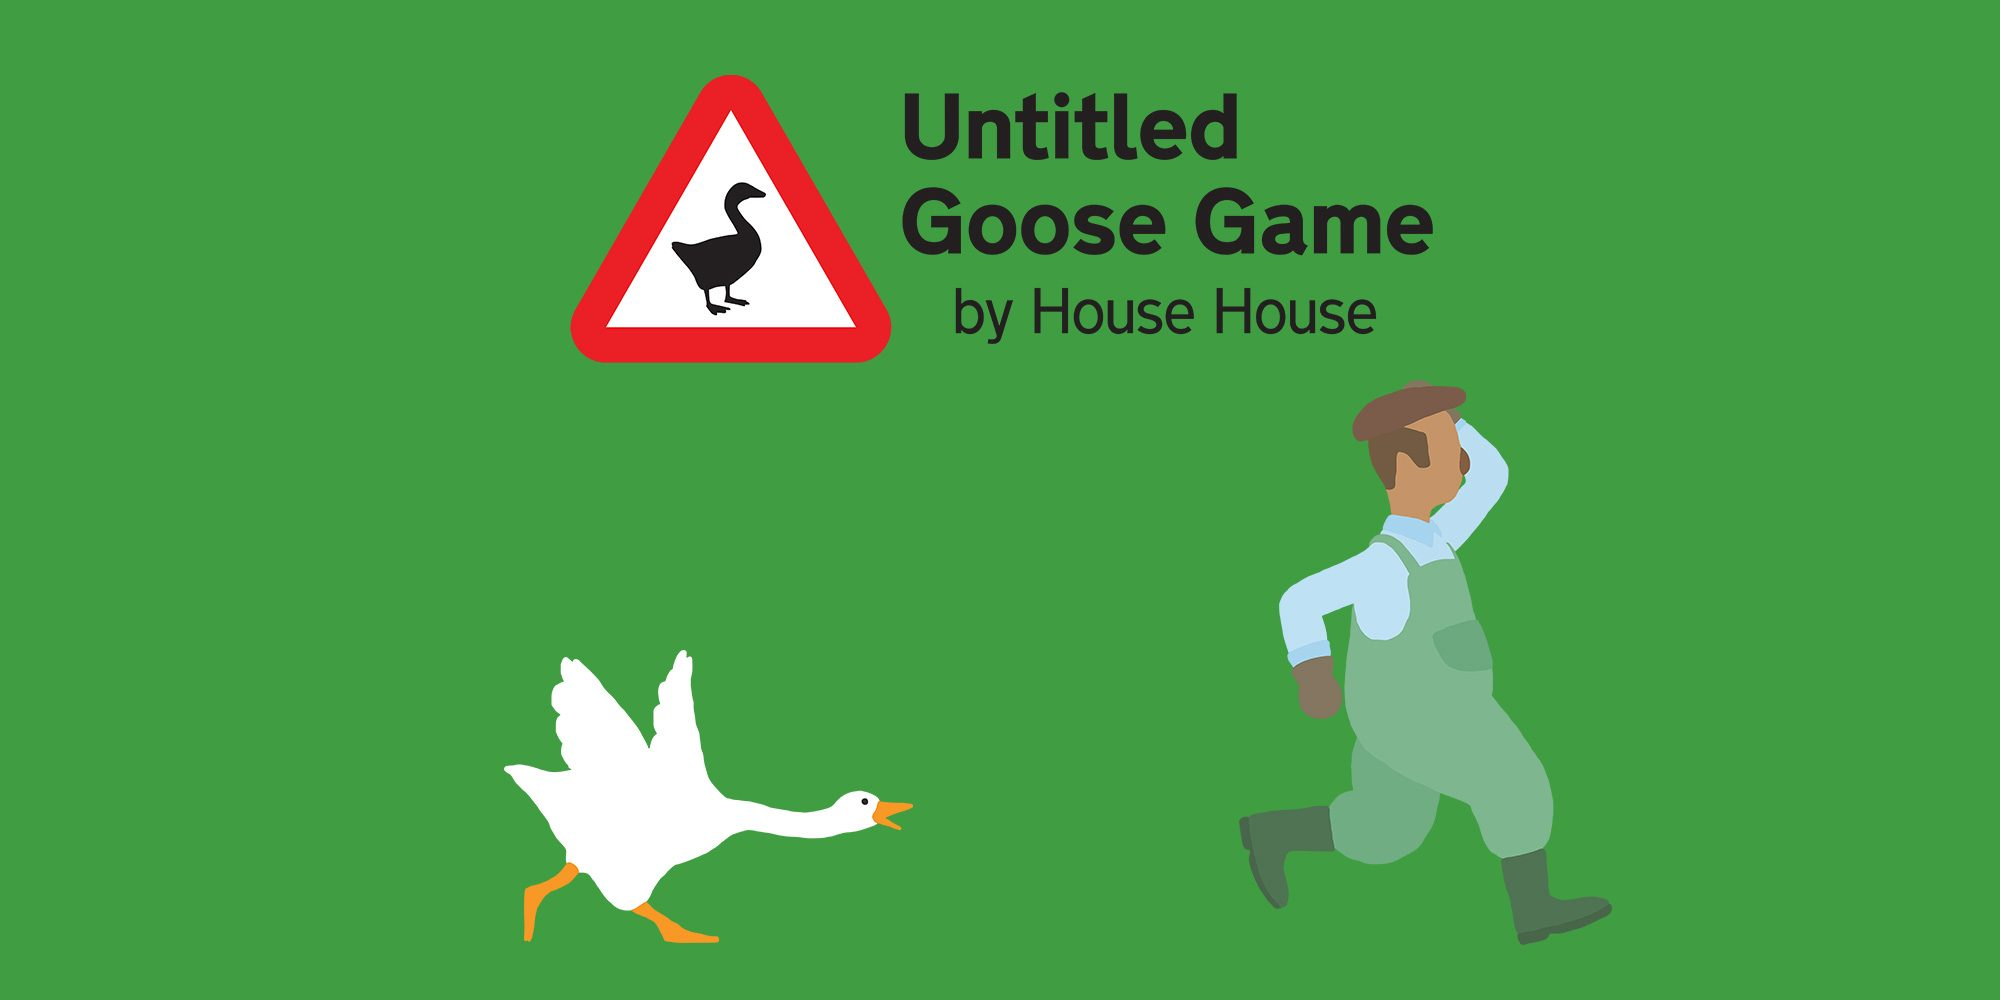 House House's Untitled Goose Game Delayed Until Later in 2019